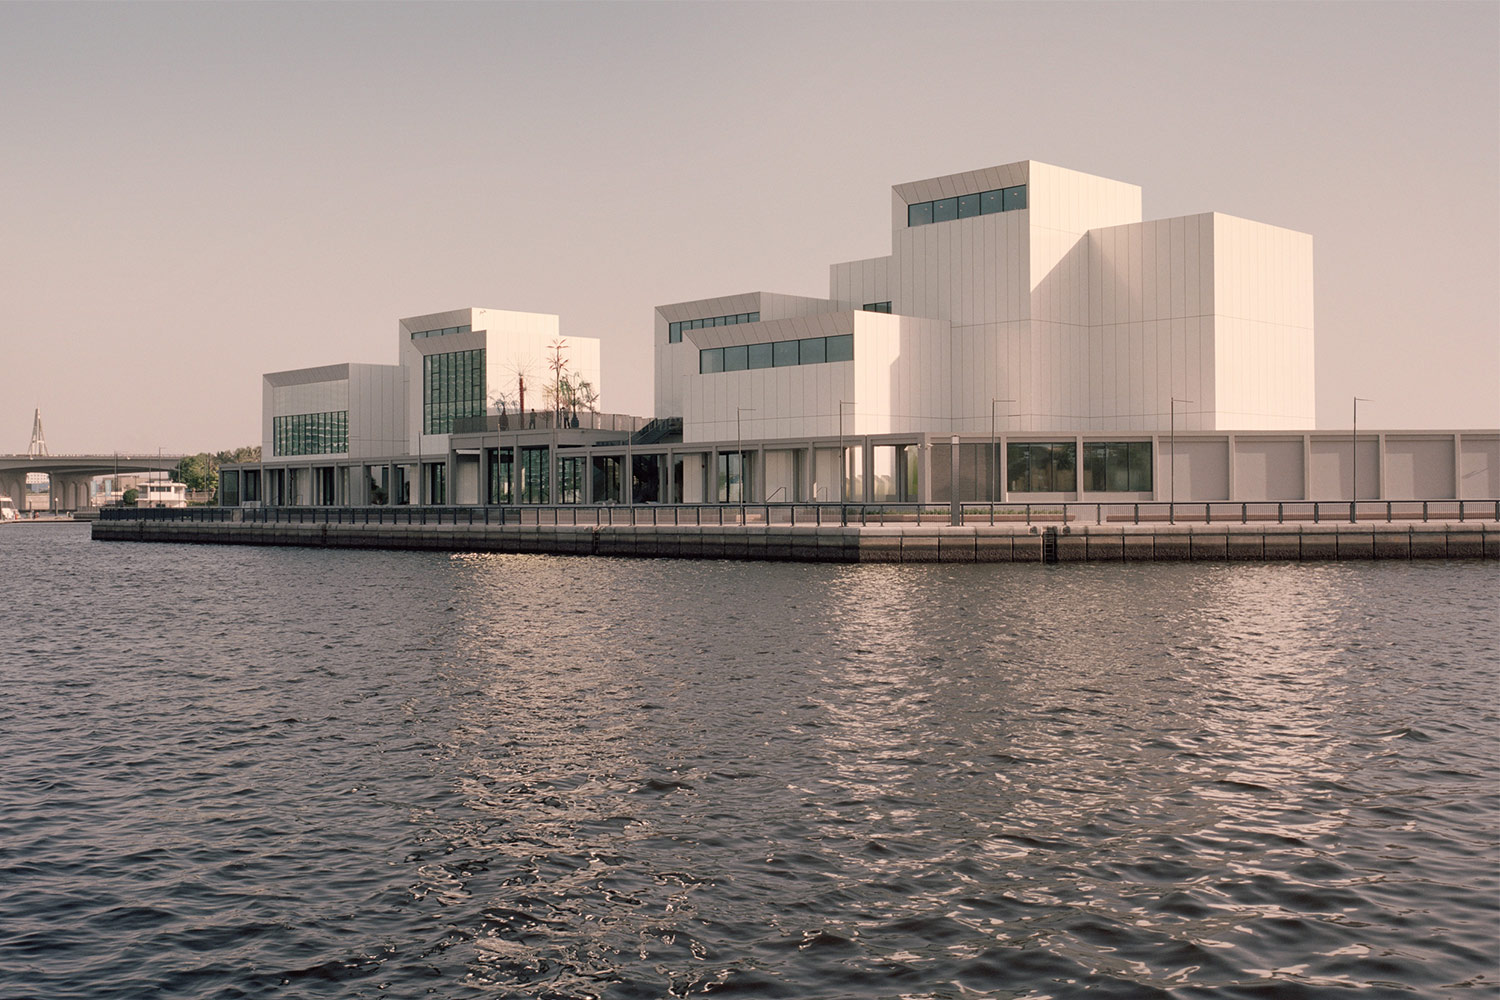 View of Jameel Arts Centre from the water beyond